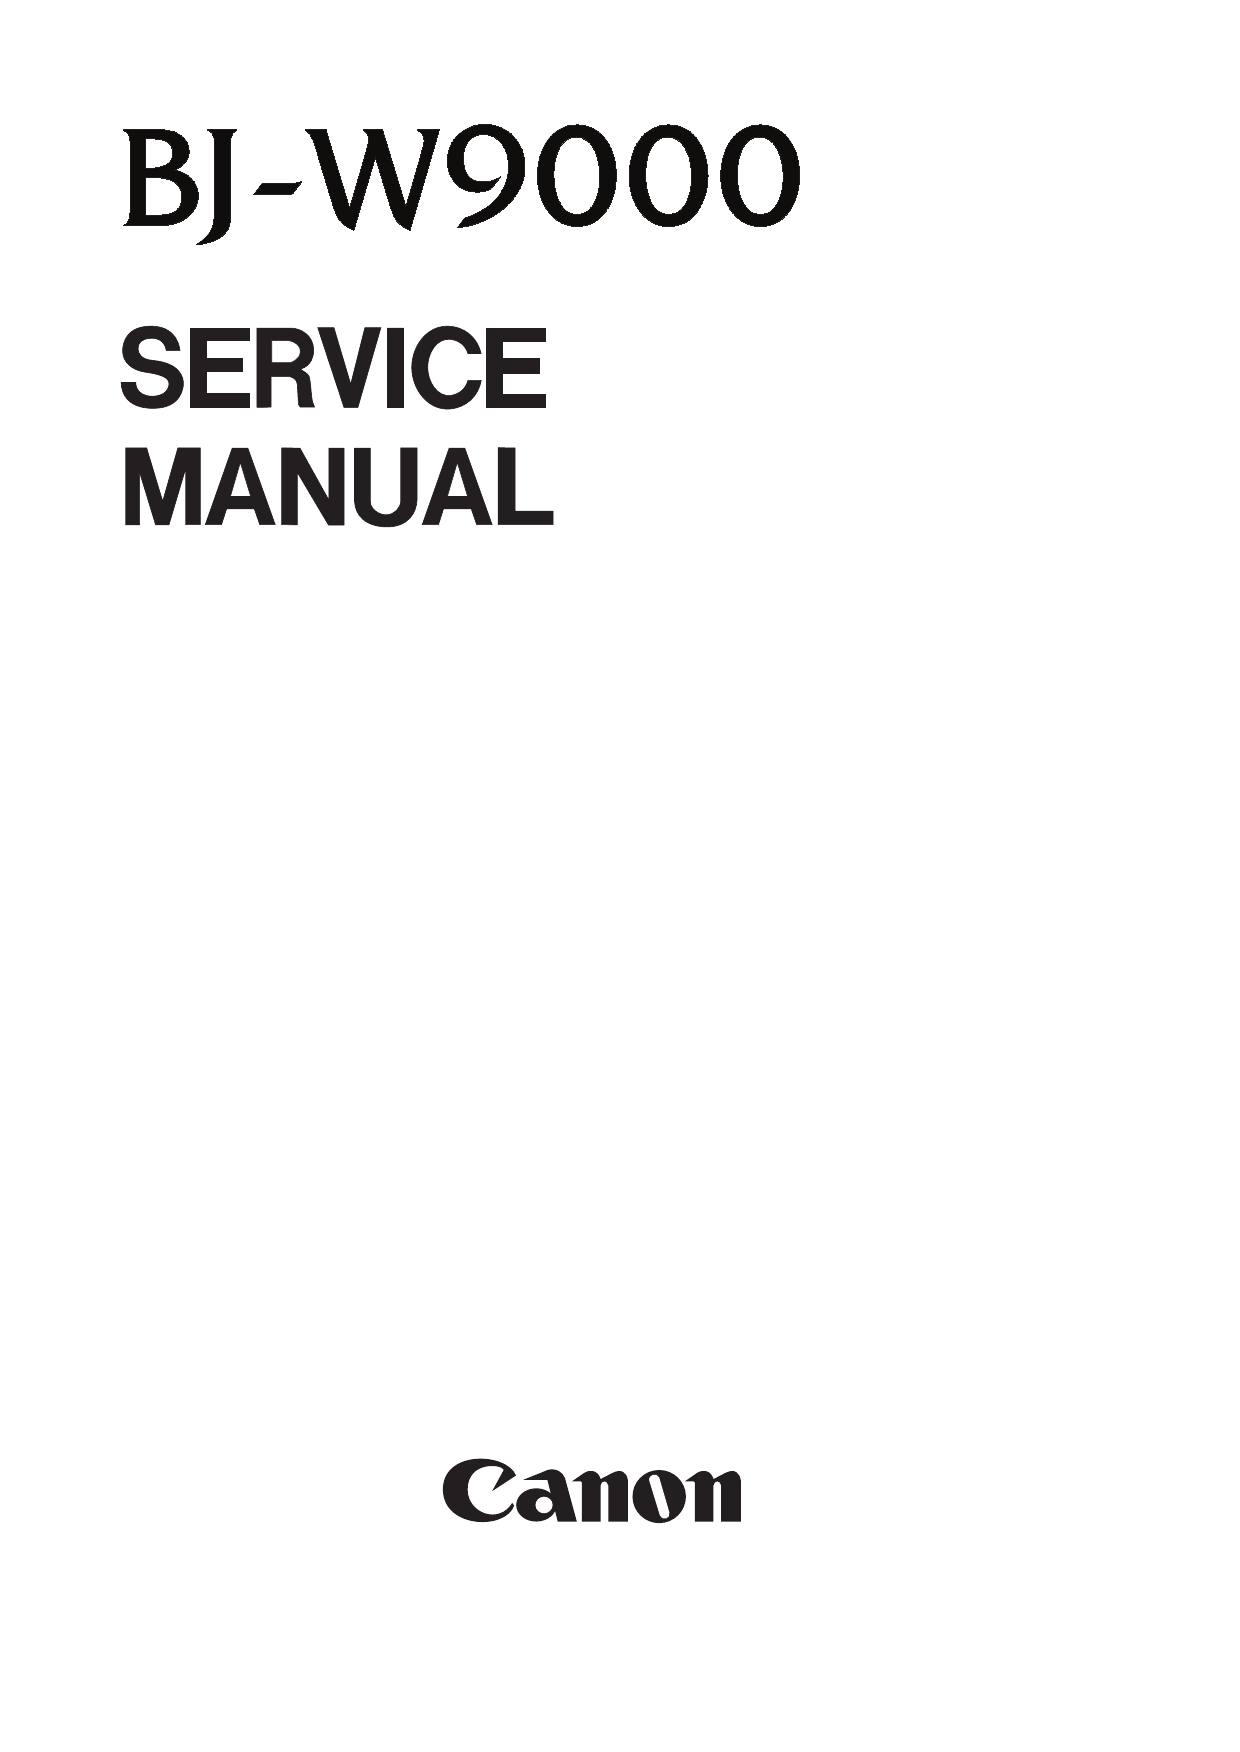 Canon Wide-Format-BubbleJet BJ-W9000 Parts and Service Manual-1